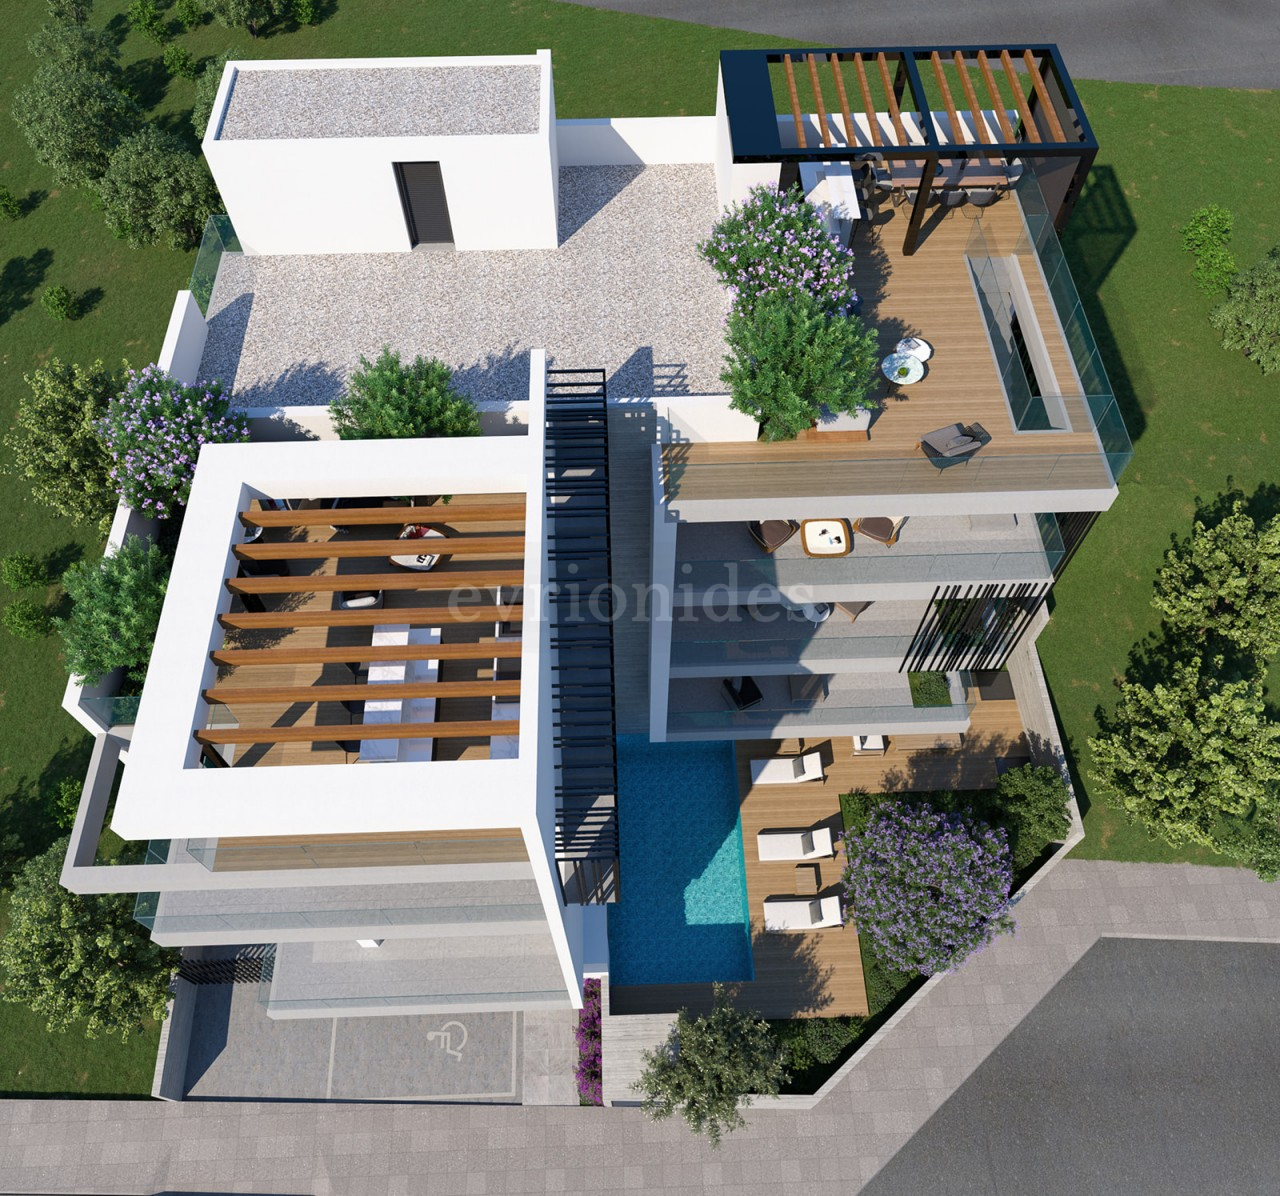 2 bedroom penthouse under construction in Agios Athanasios area